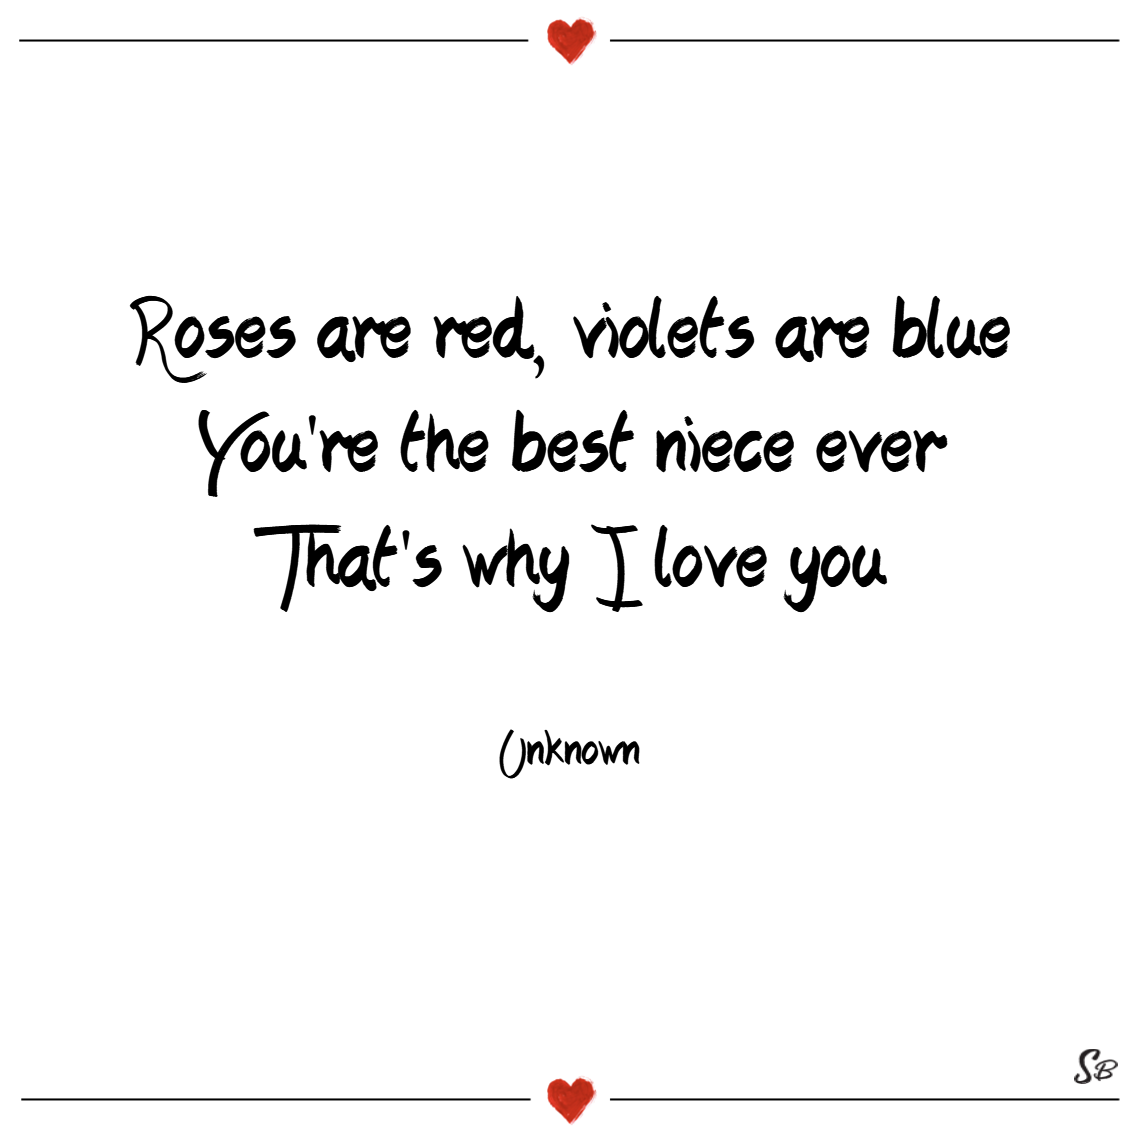 Roses are red, violets are blue, you're the best niece ever, that's why i love you. – unknown